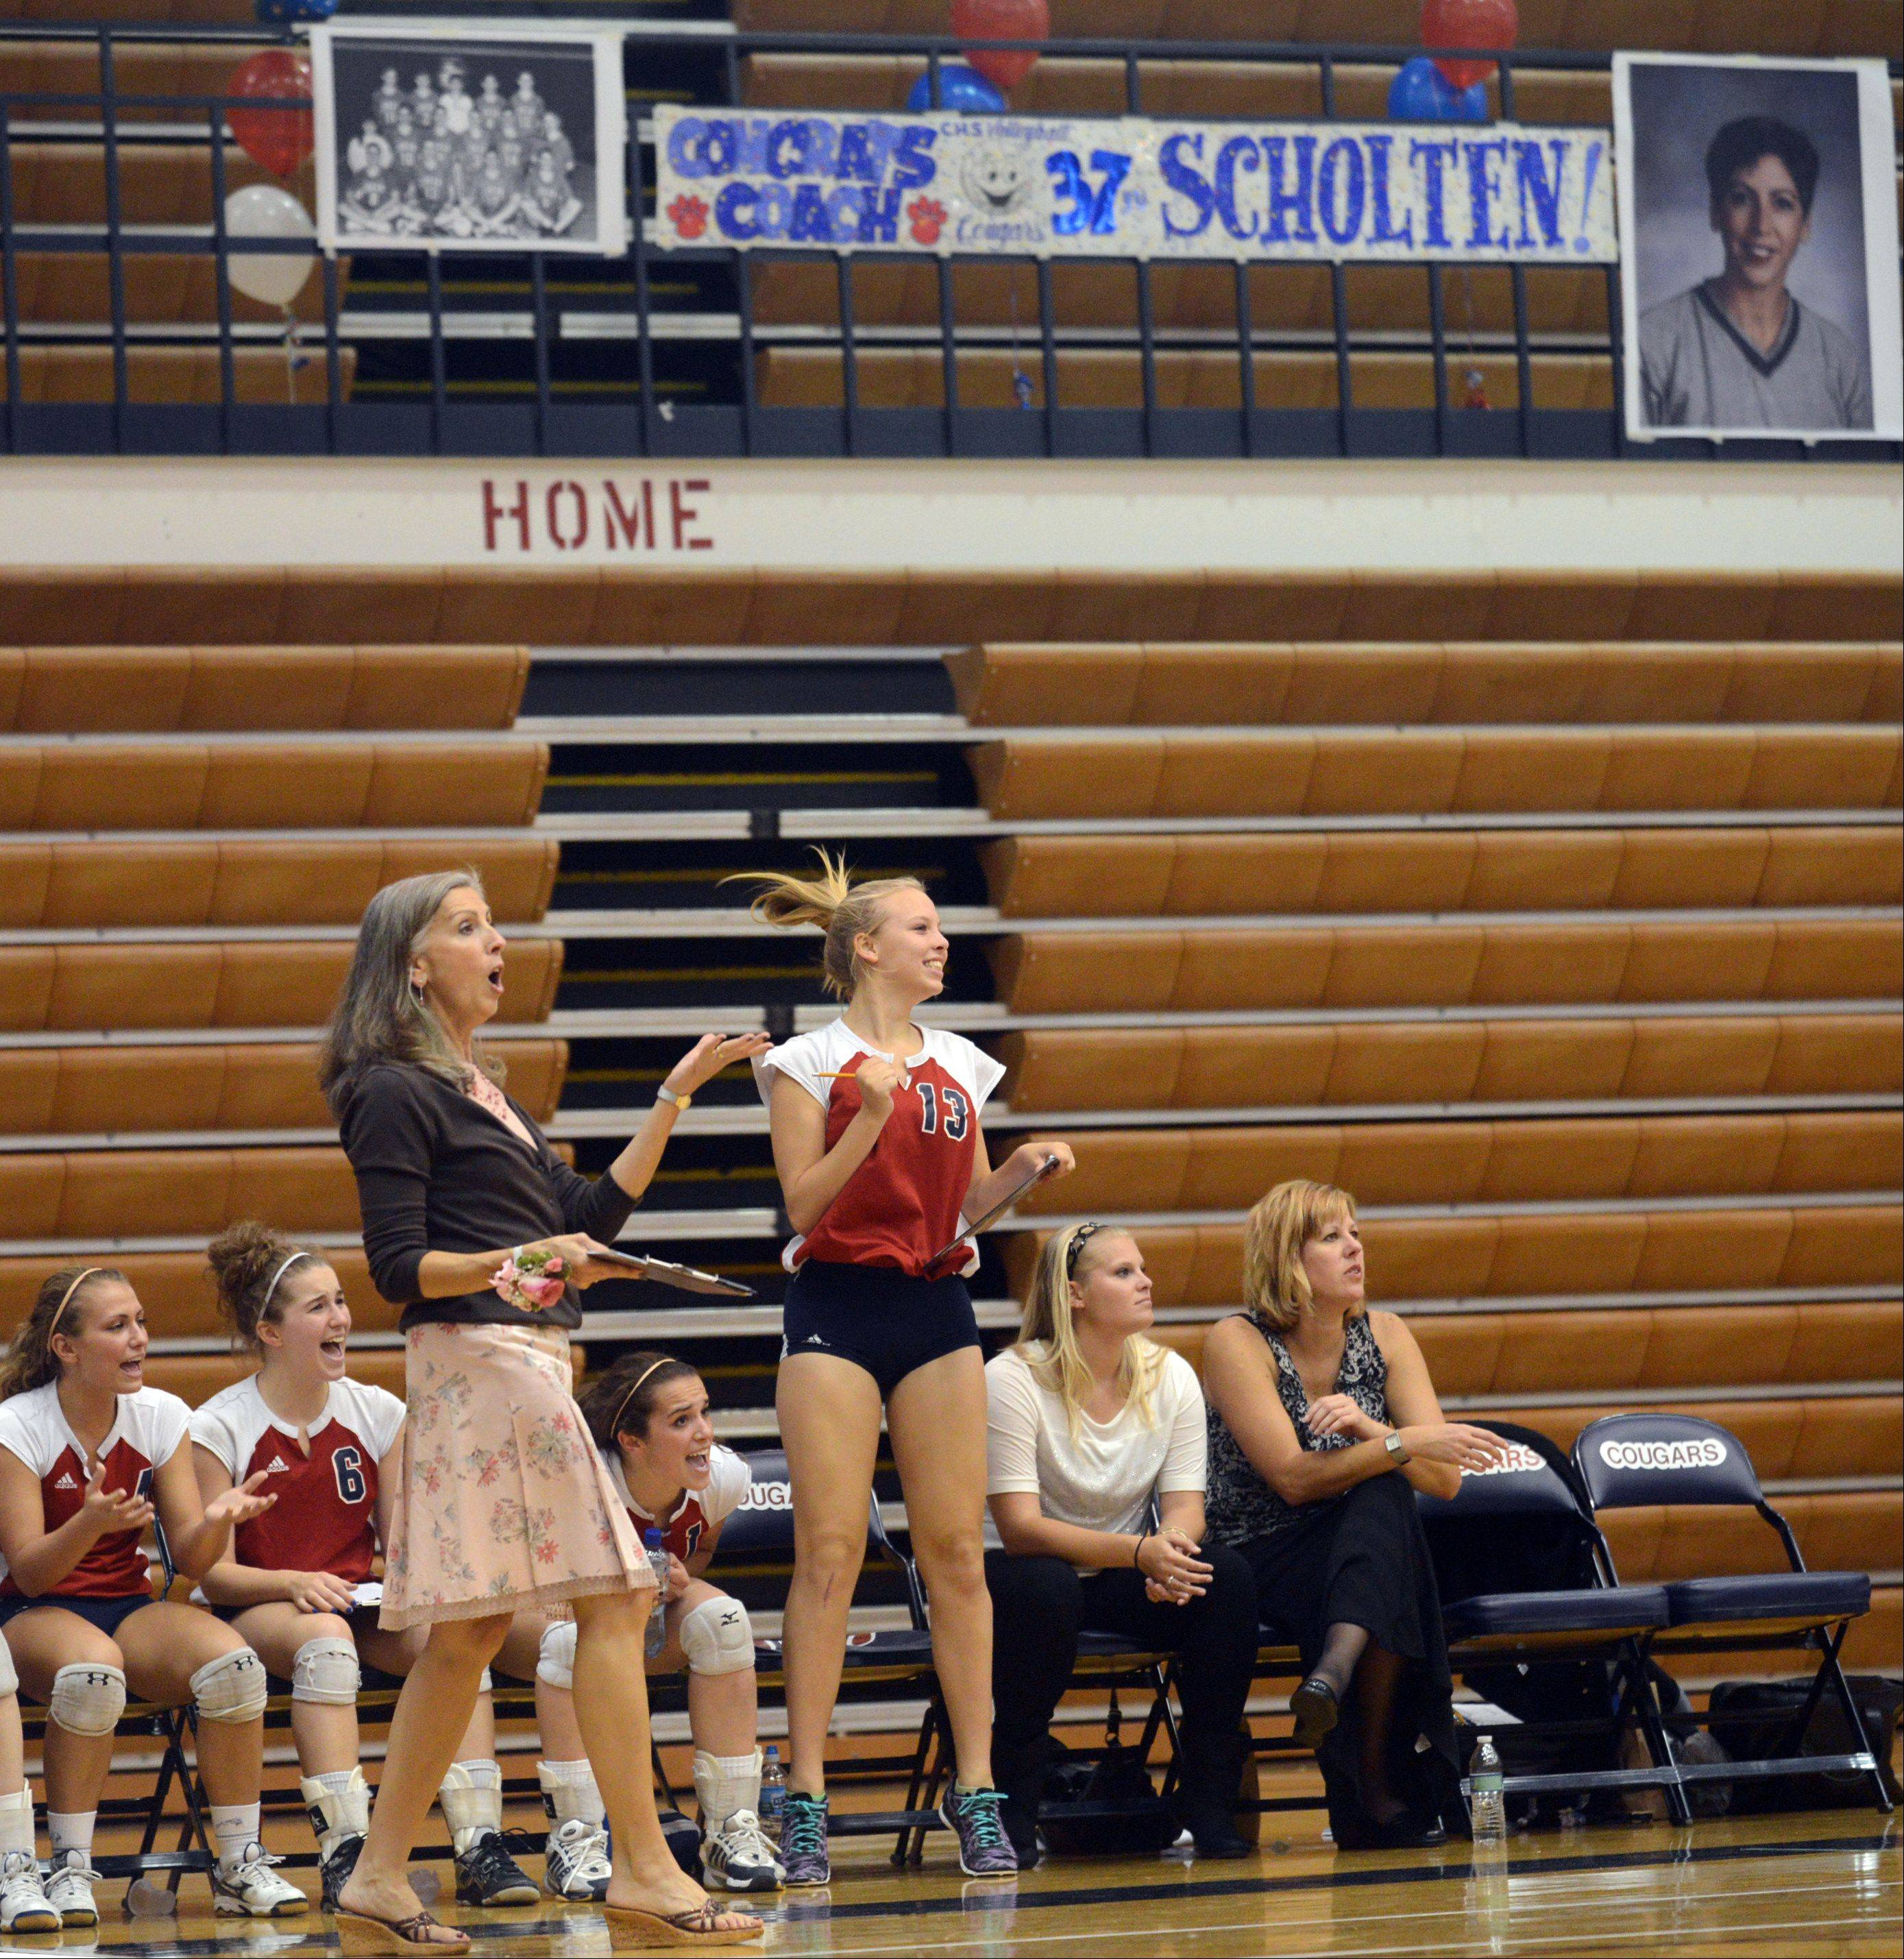 Patrick Kunzer/pkunzer@dailyherald.comConant volleyball coach Peggy Scholten was honored before a game with Schaumburg on Tuesday night at William N. Perry Gymnasium. Scholten is retiring after this, her 37th year of coaching. Here, she celebrates a point with player Katie Lomas.